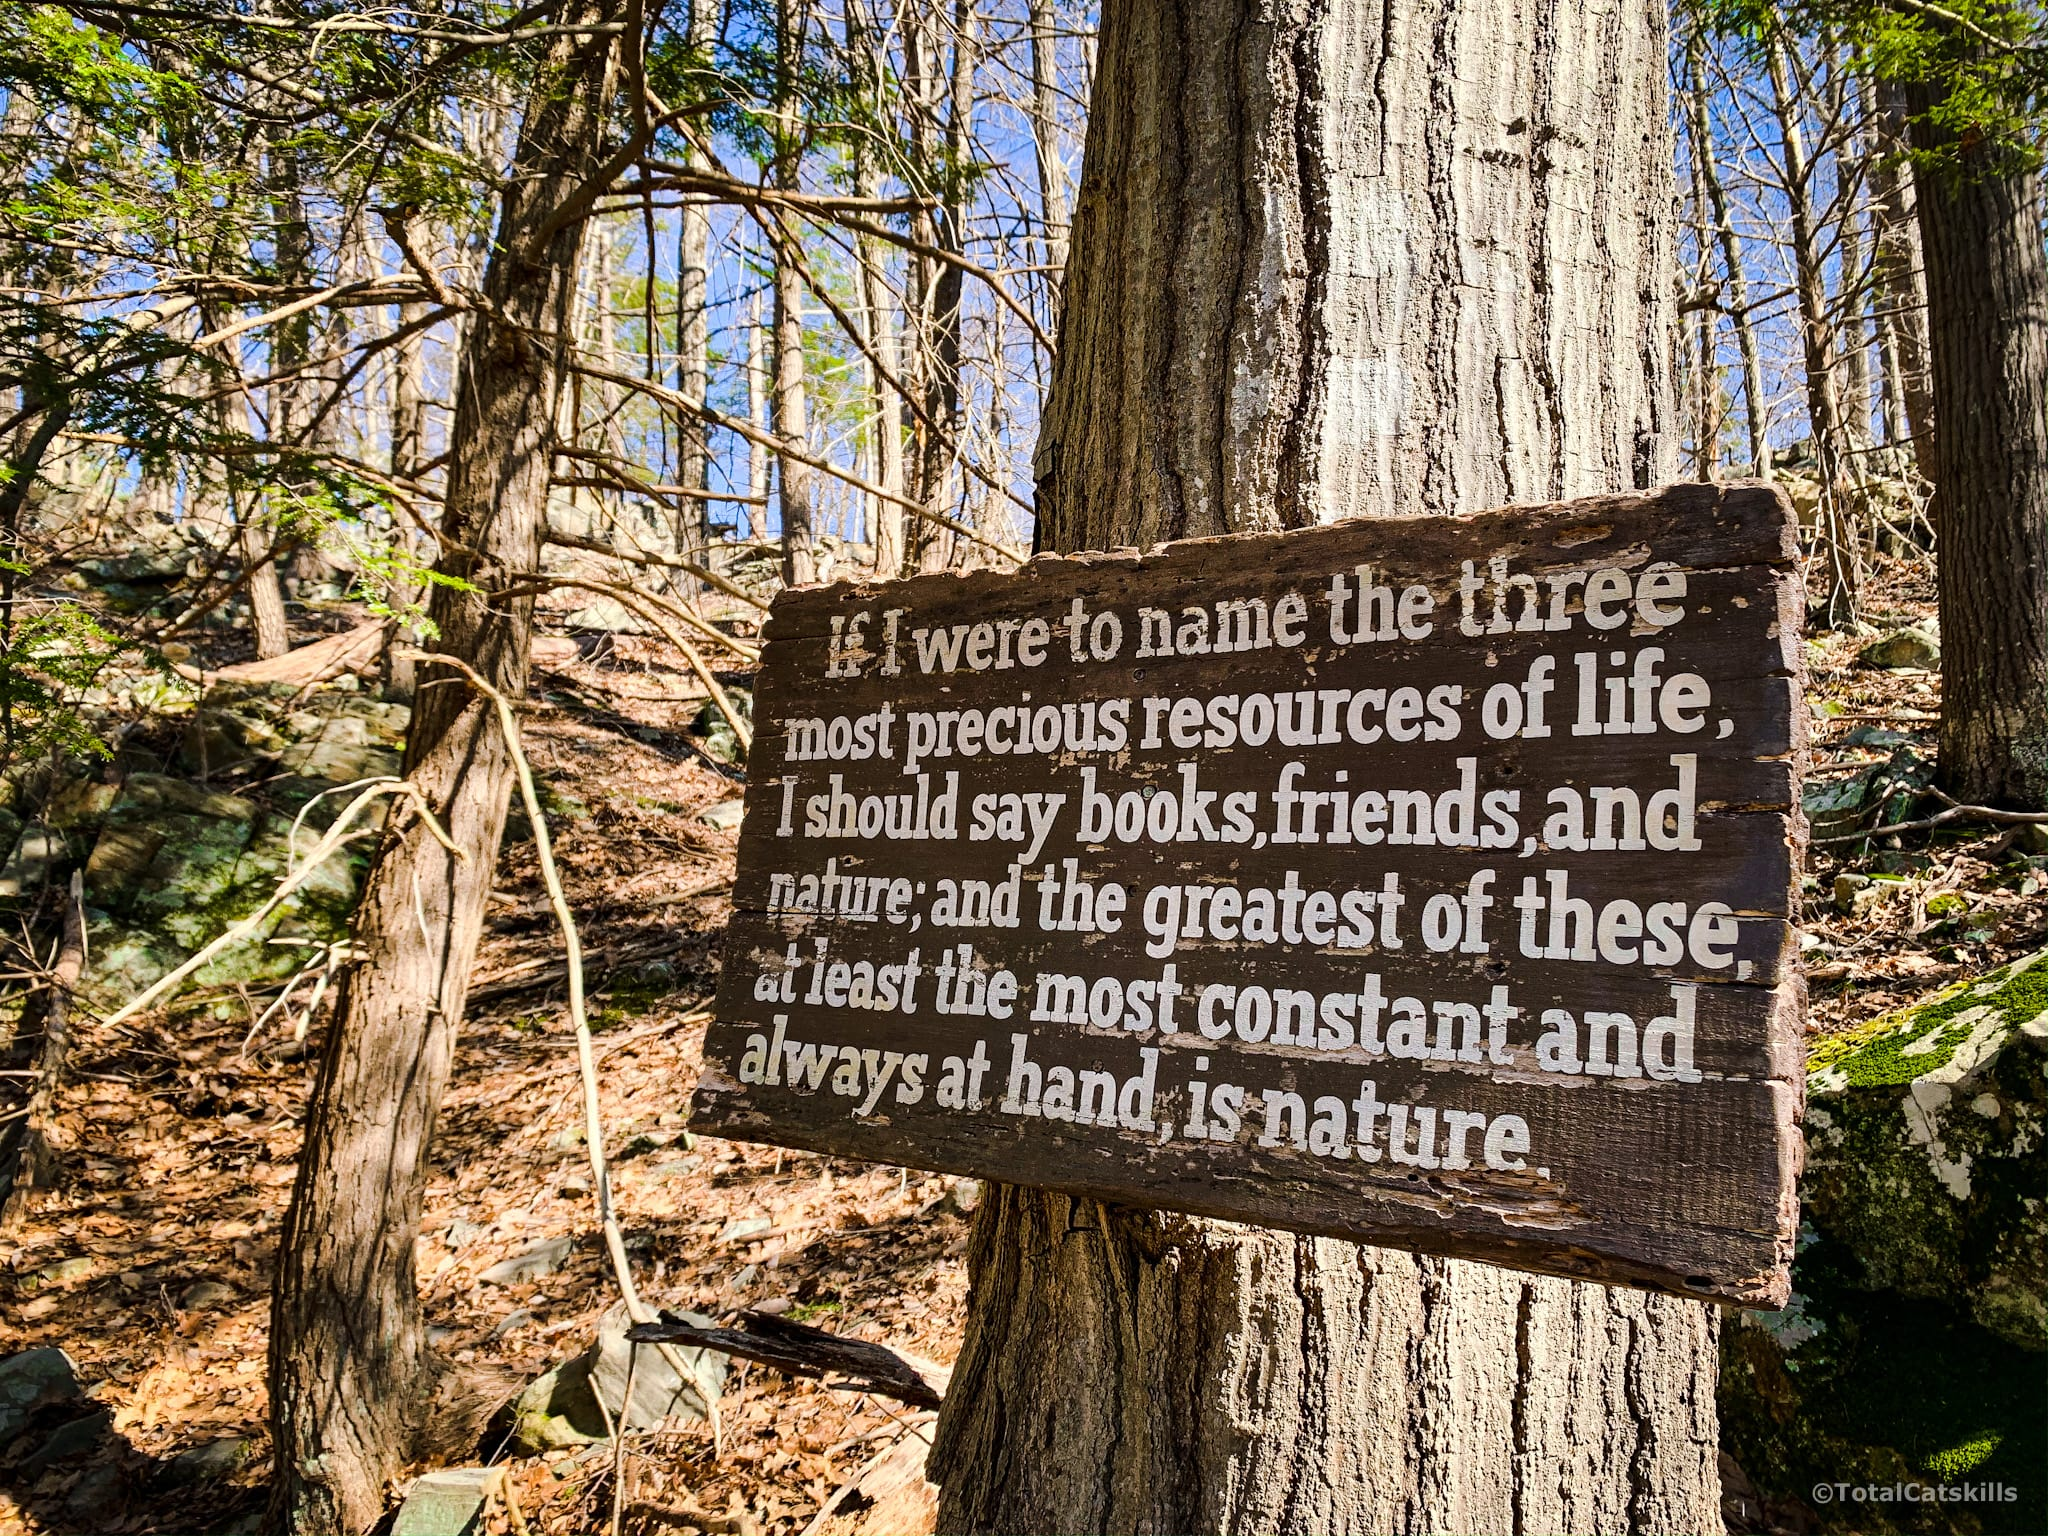 Burroughs quote on a wooden plaque